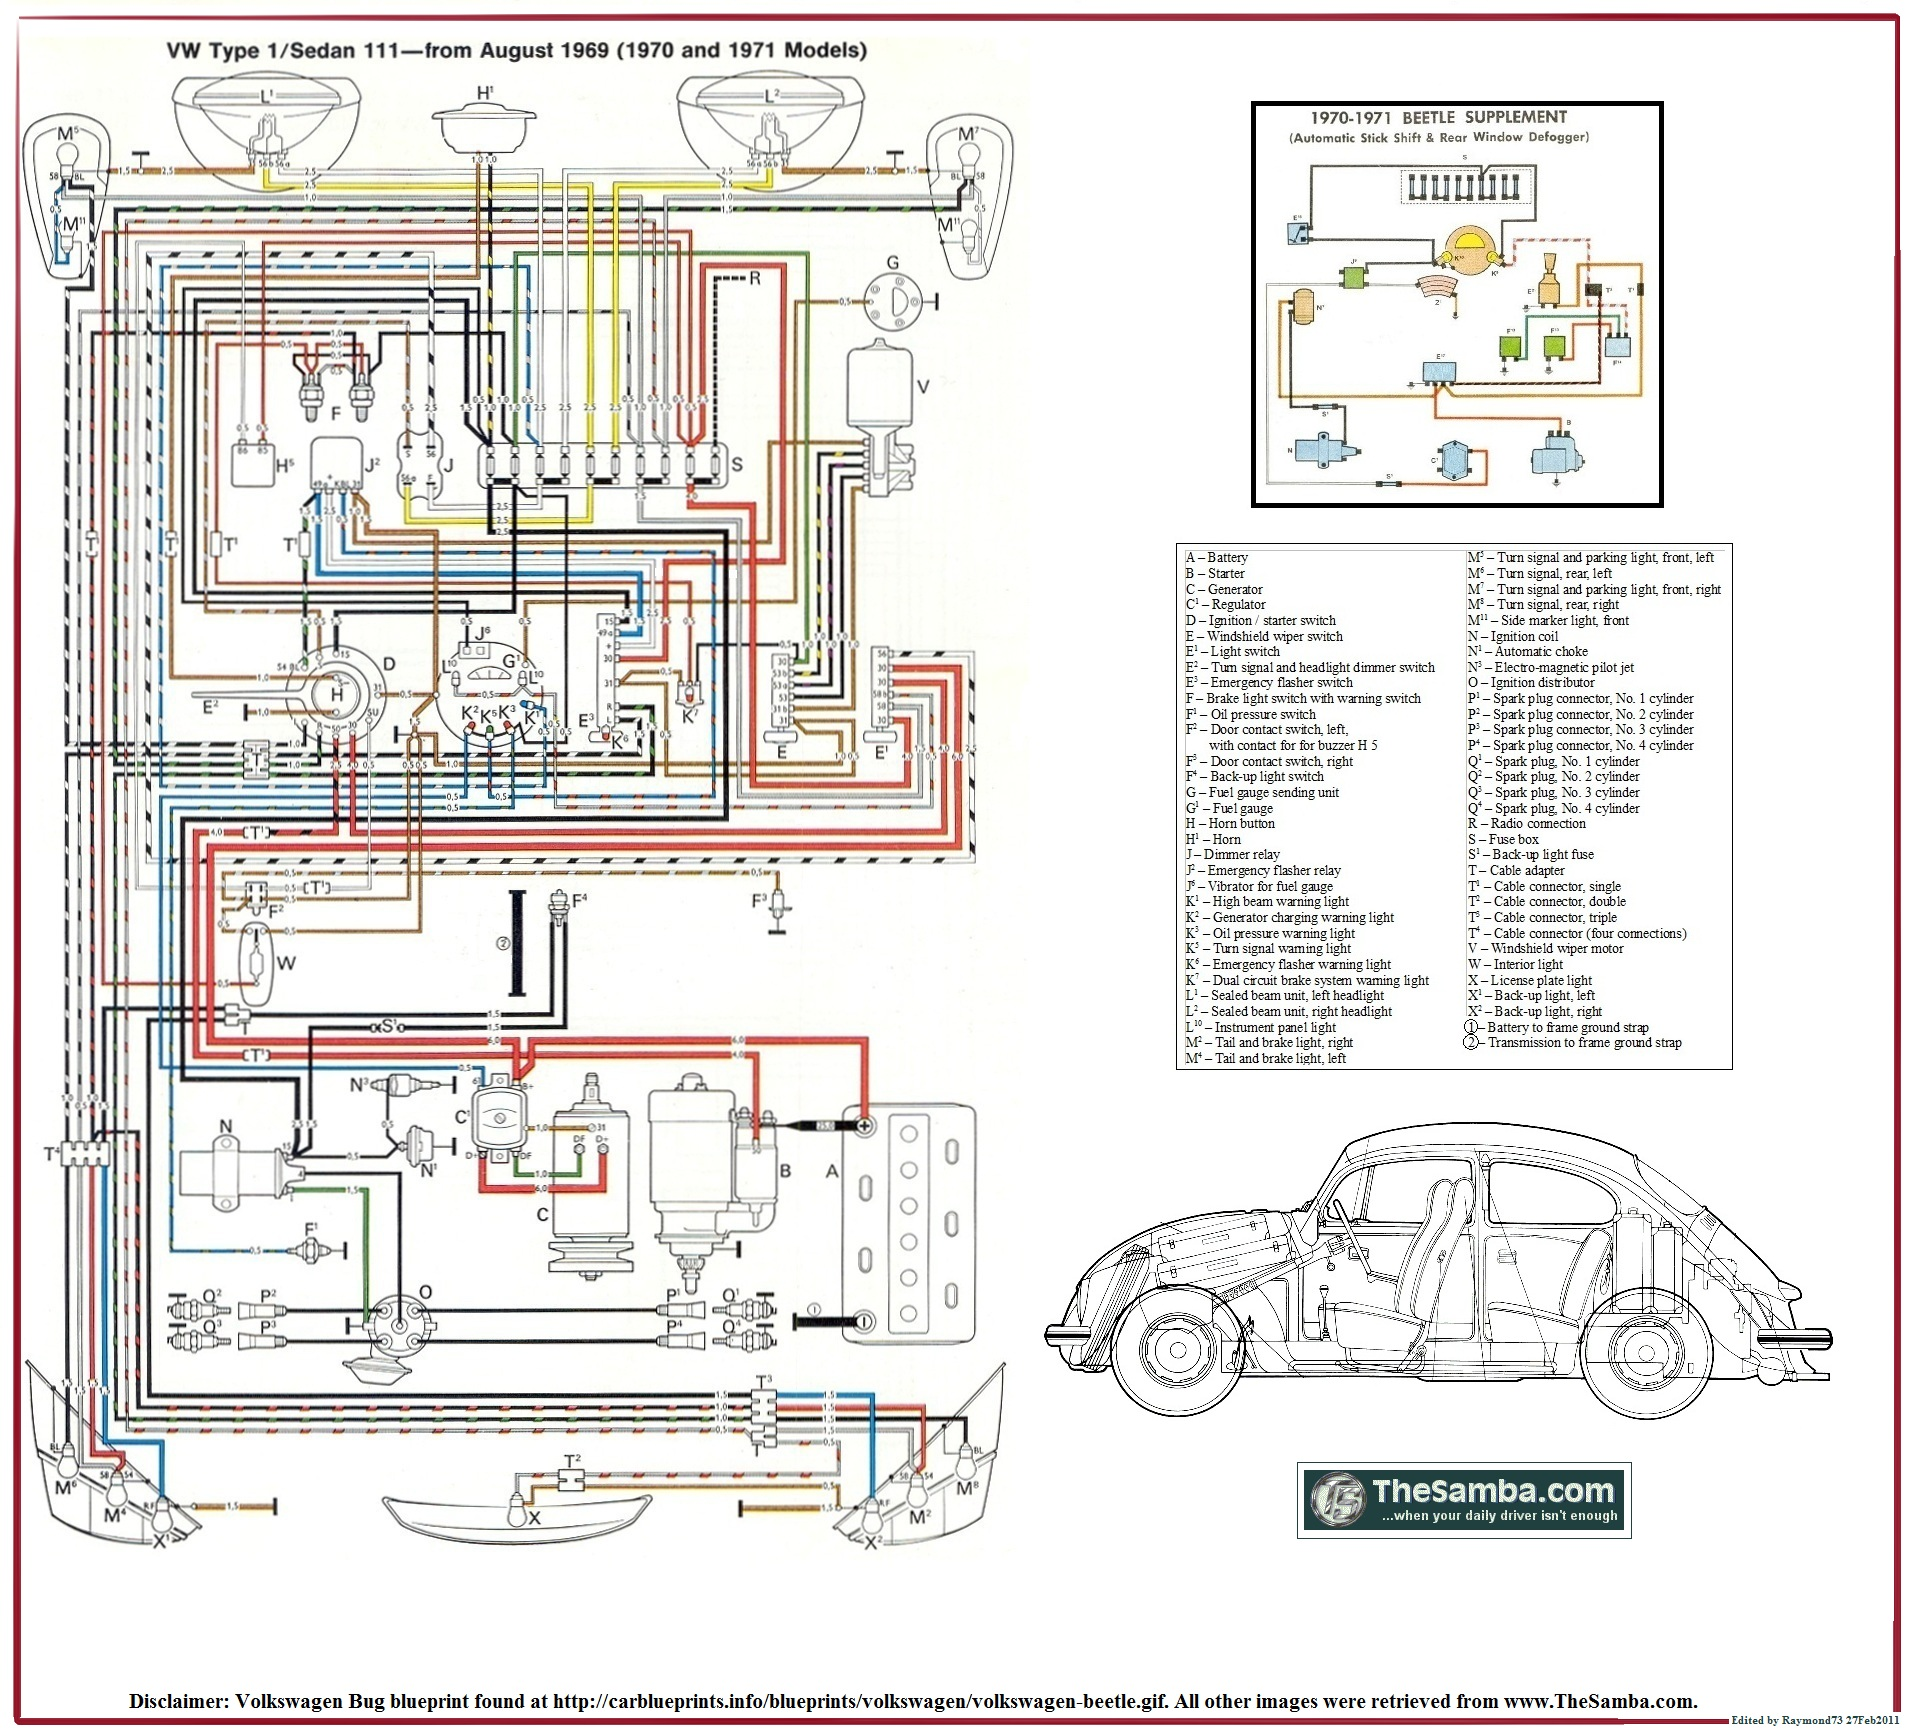 1970_VW_Type_1_Poster thesamba com beetle late model super 1968 up view topic vw beetle wiring diagram at pacquiaovsvargaslive.co